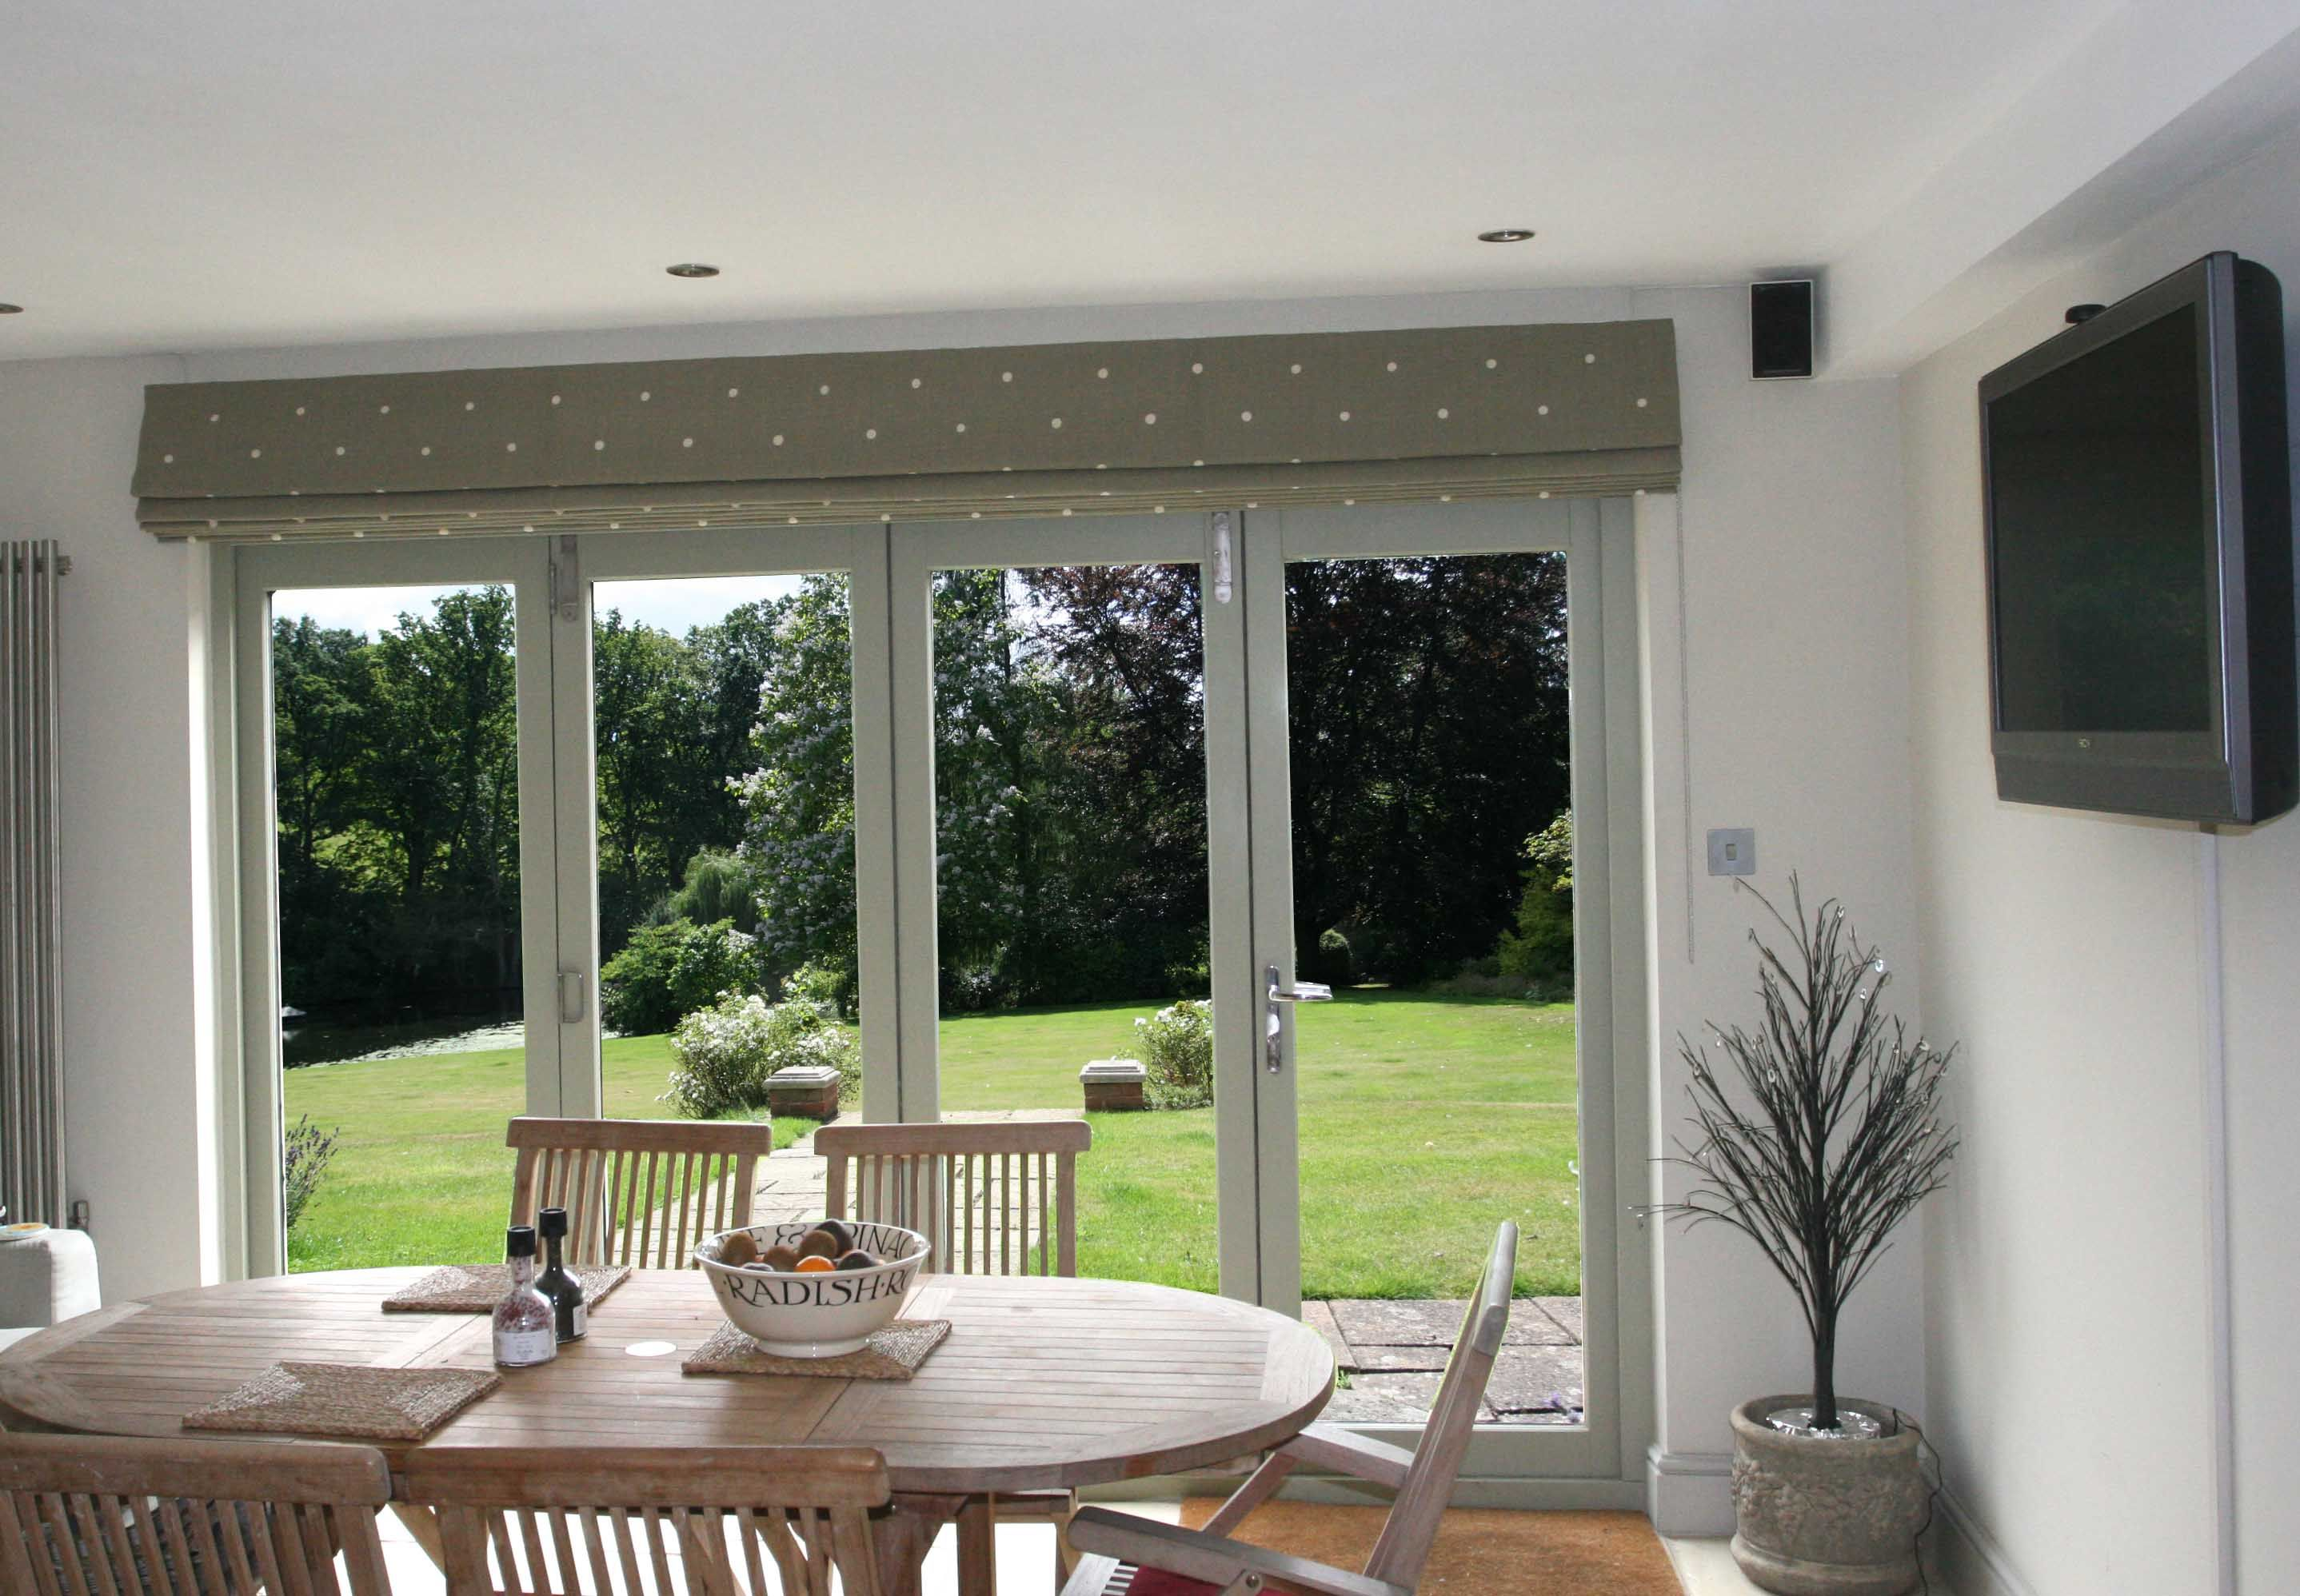 Kitchen with bifold doors with classic roman blind in moghul